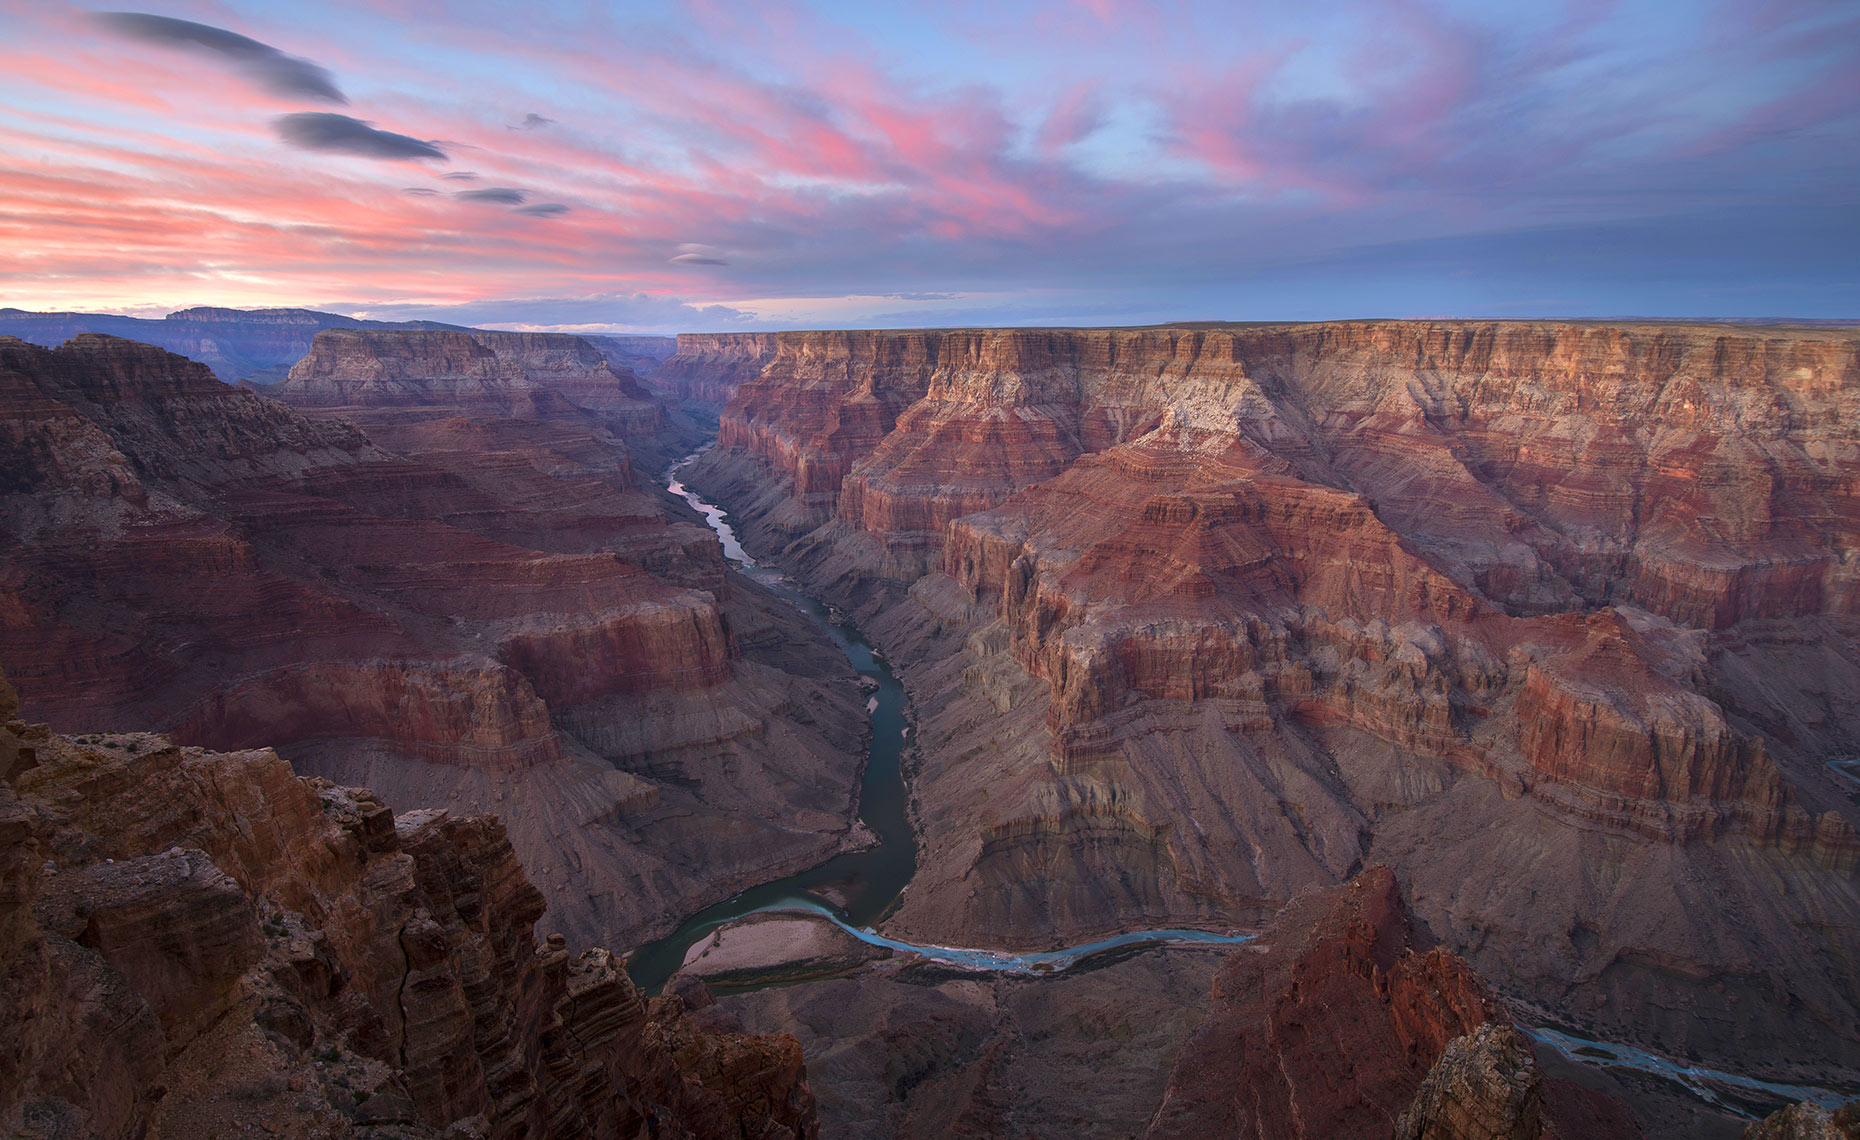 Smithsonian: Saving the Grand Canyon